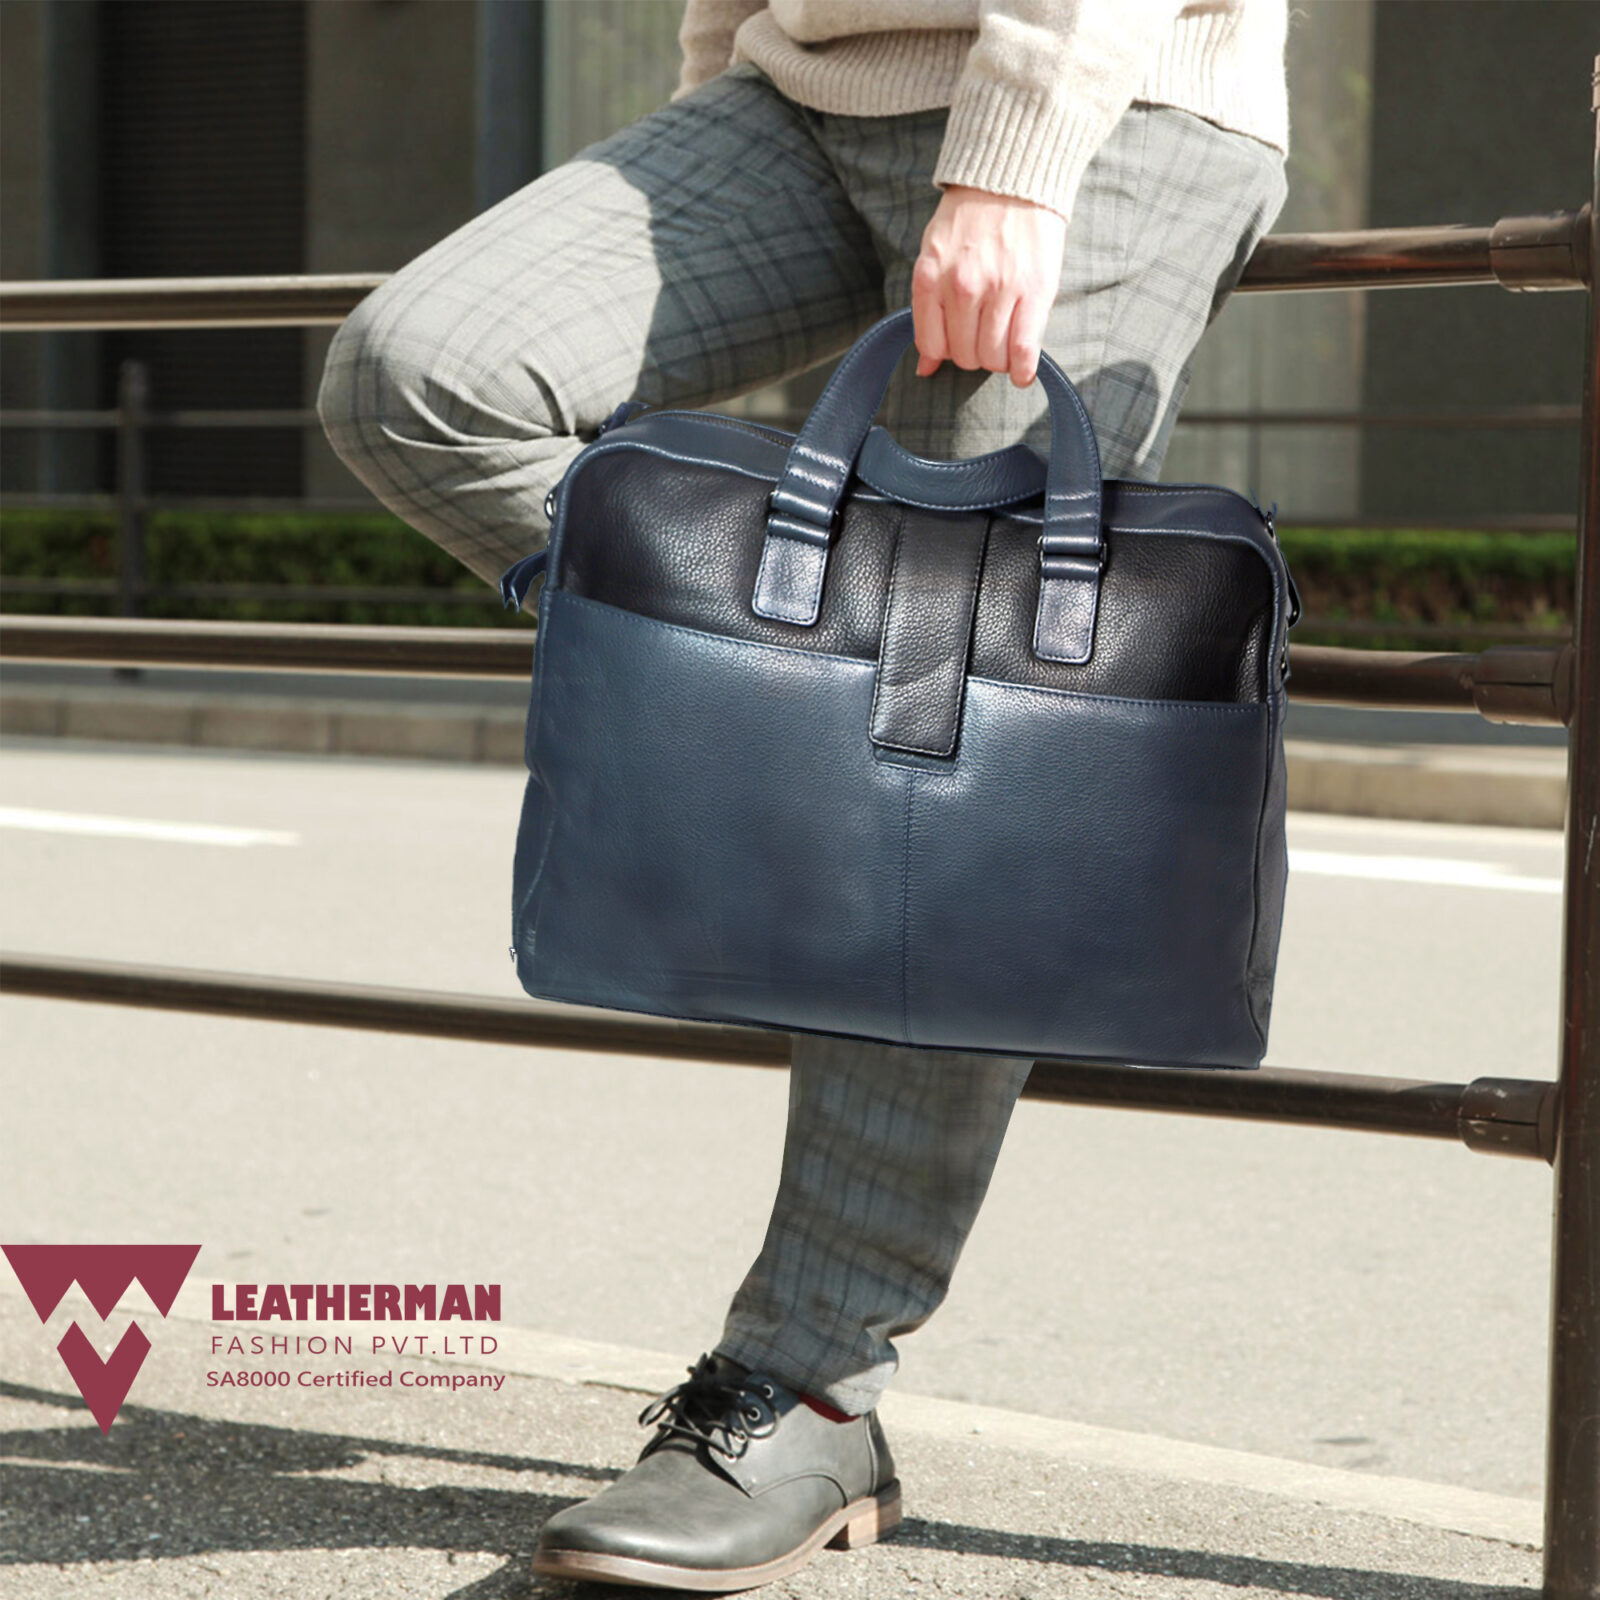 Leather Goods Manufacturers India, Leather Bags Suppliers, Exporters